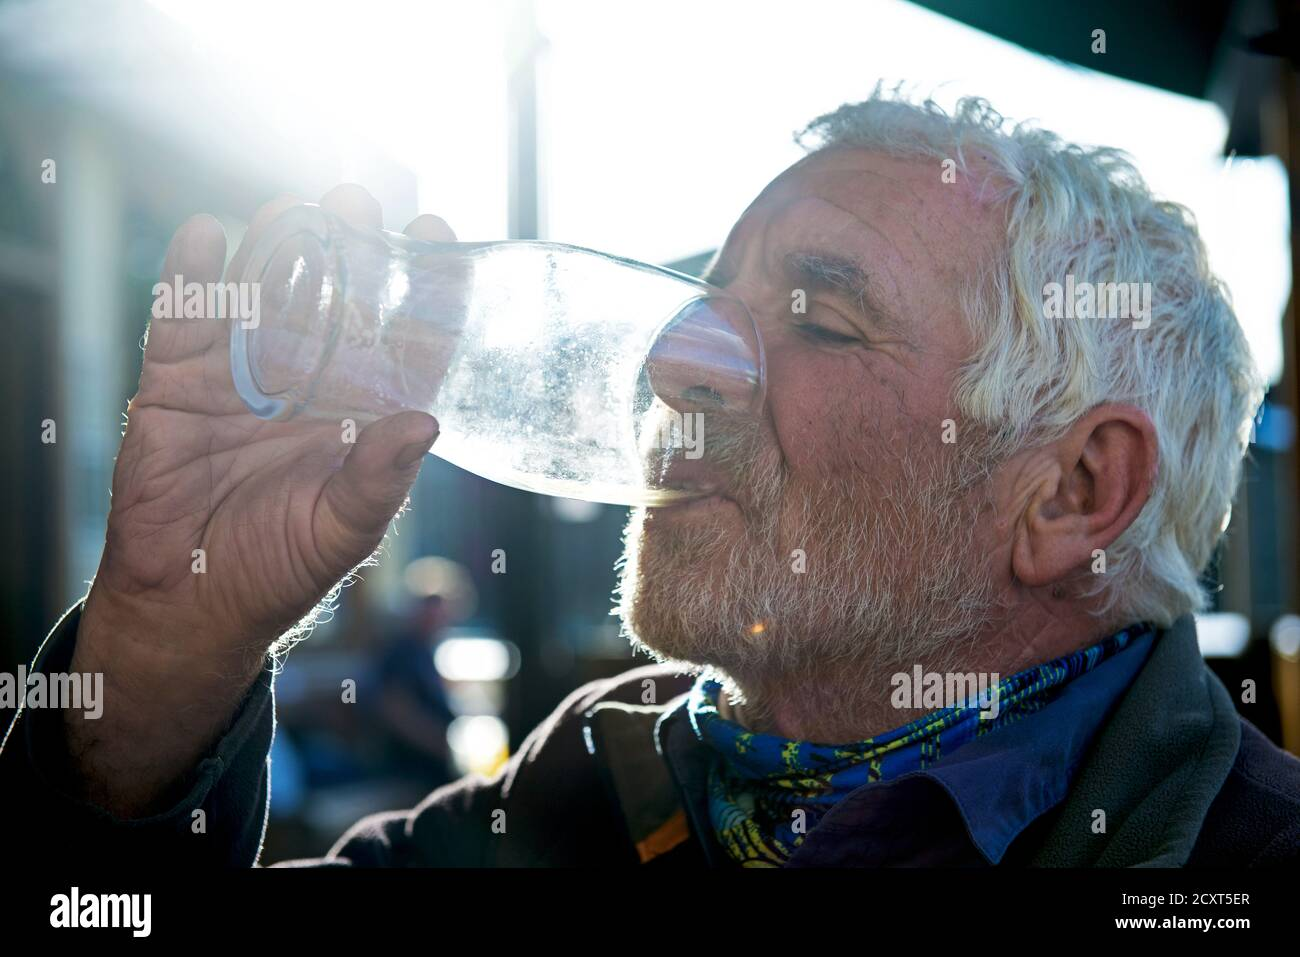 senior-man-draining-the-last-drop-opf-beer-from-a-pint-glass-england-uk-2CXT5ER.jpg